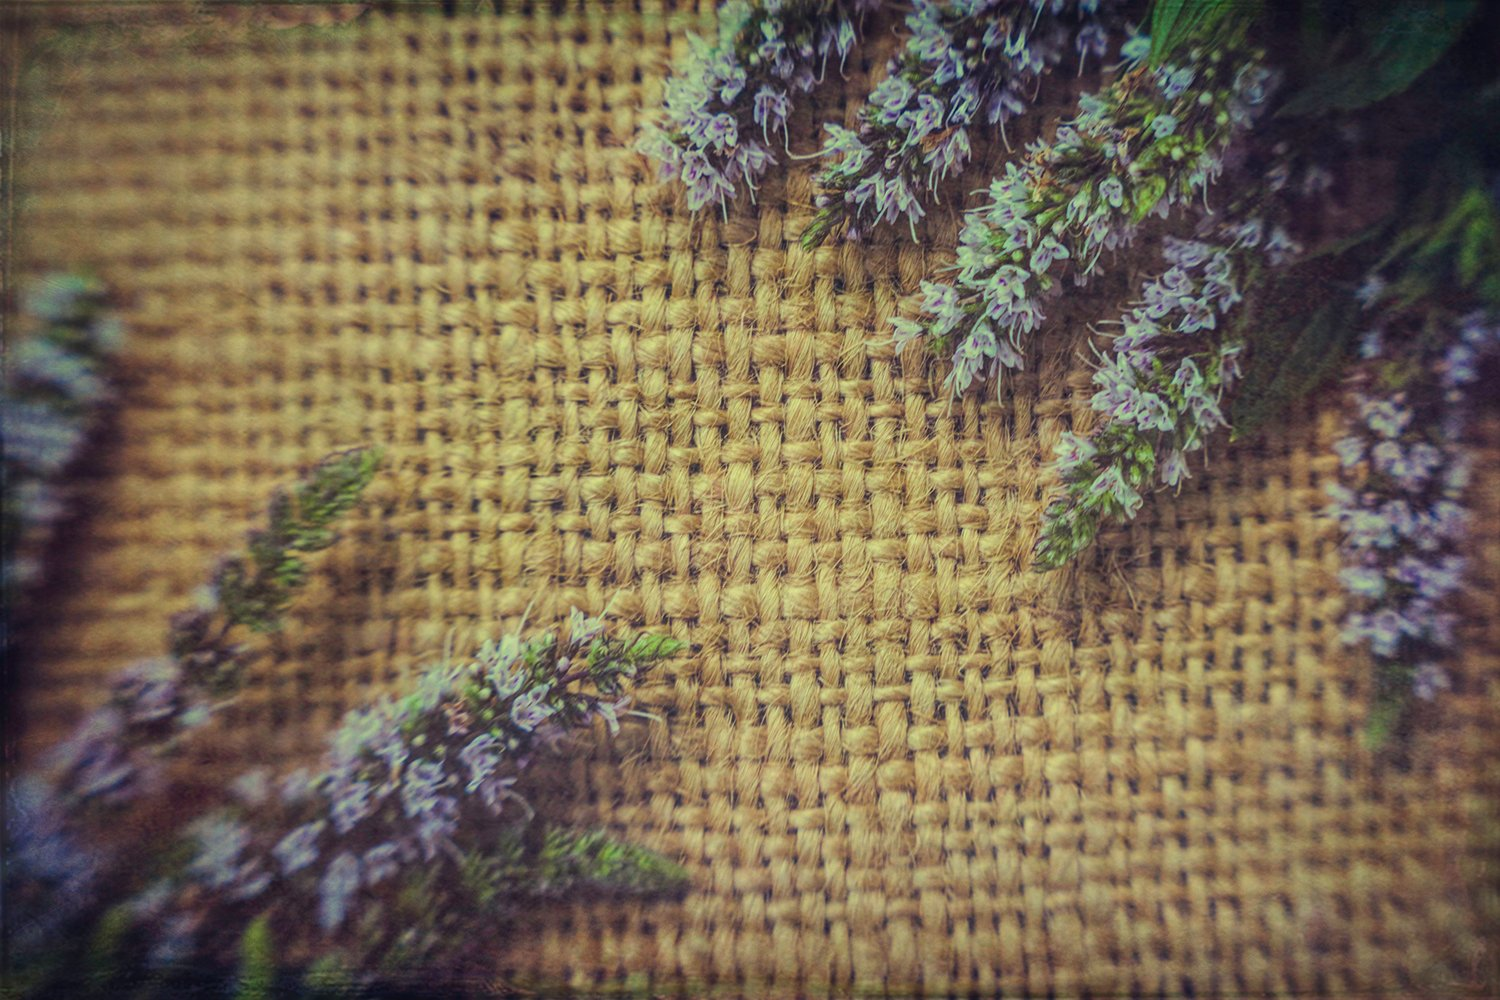 Vintage textural summer background. Old burlap and flowers example image 1